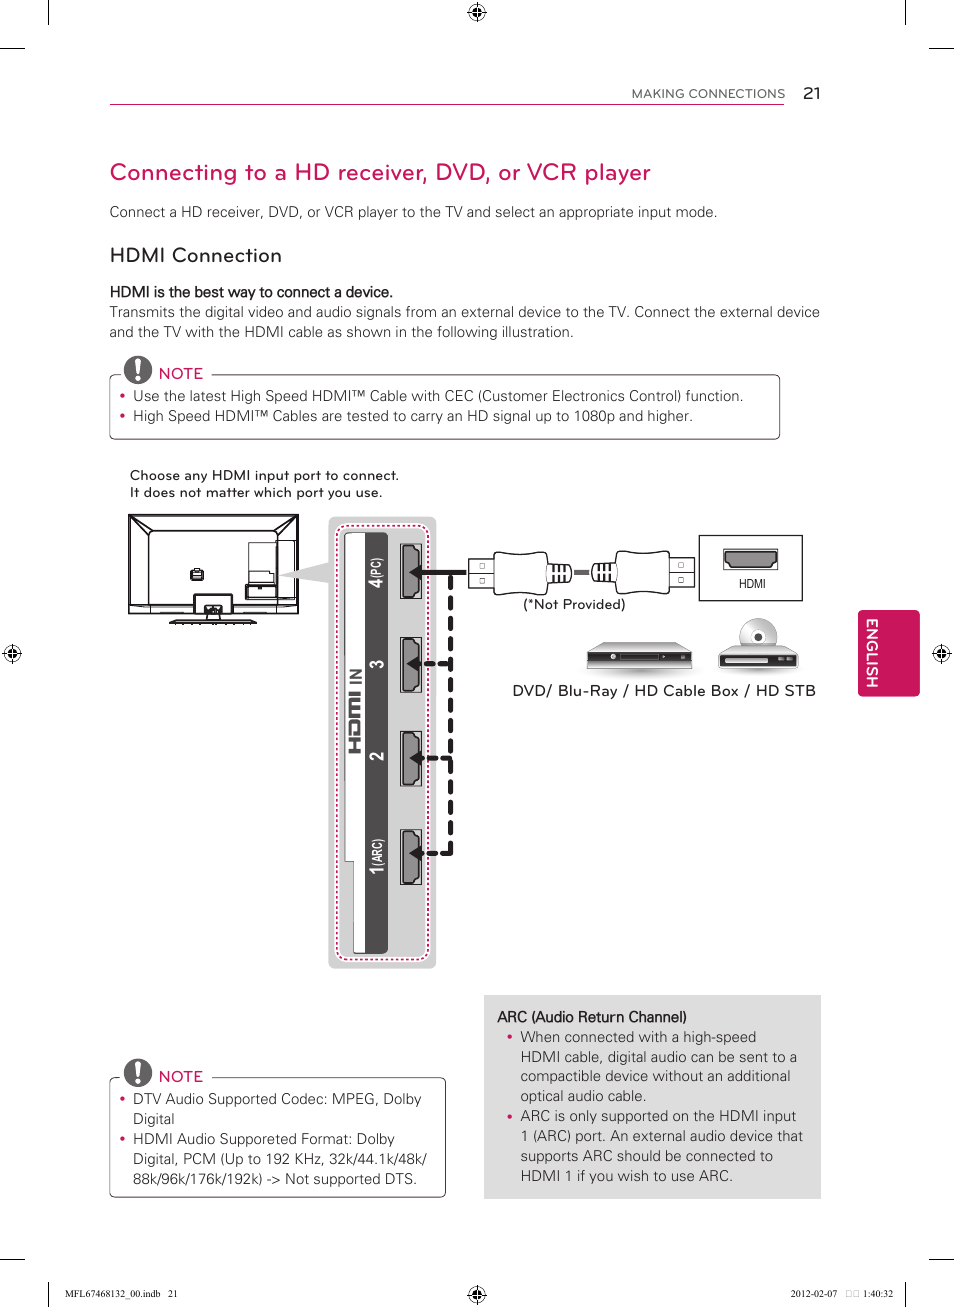 Connecting to a hd receiver, dvd, or vcr player, Hdmi connection | LG  47LM6200 User Manual | Page 21 / 44